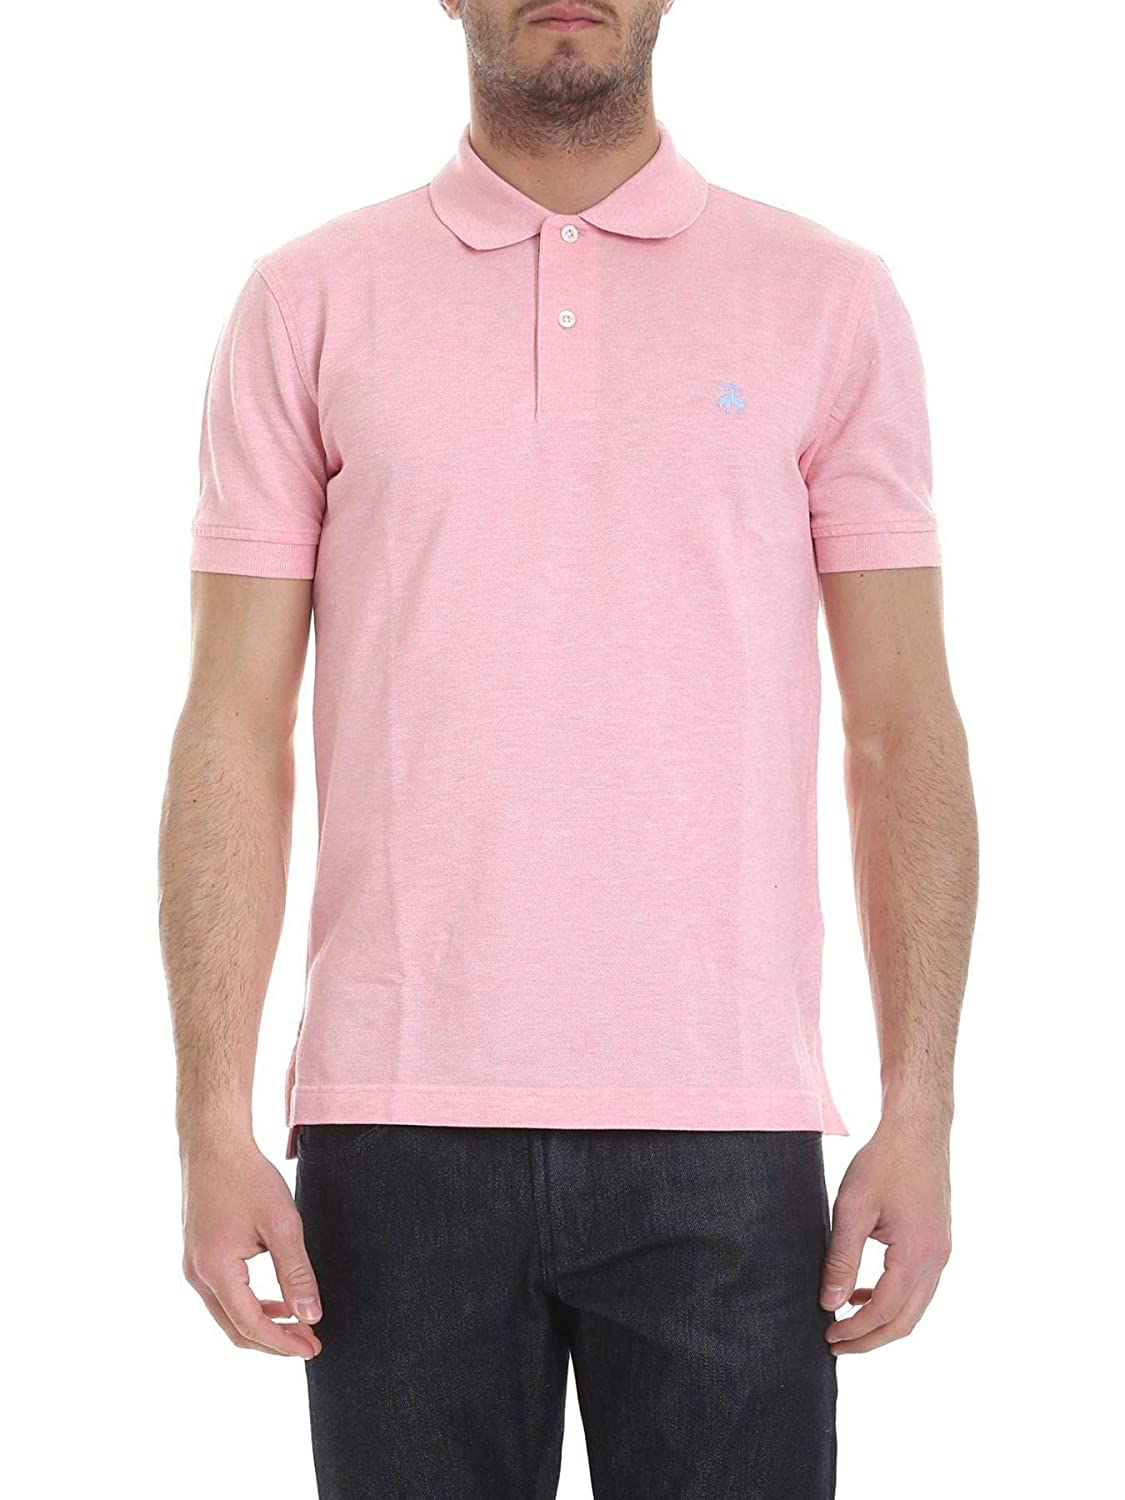 Brooks Brougehers Luxury mode Homme 100126531 Rose Polo   Printemps été 19